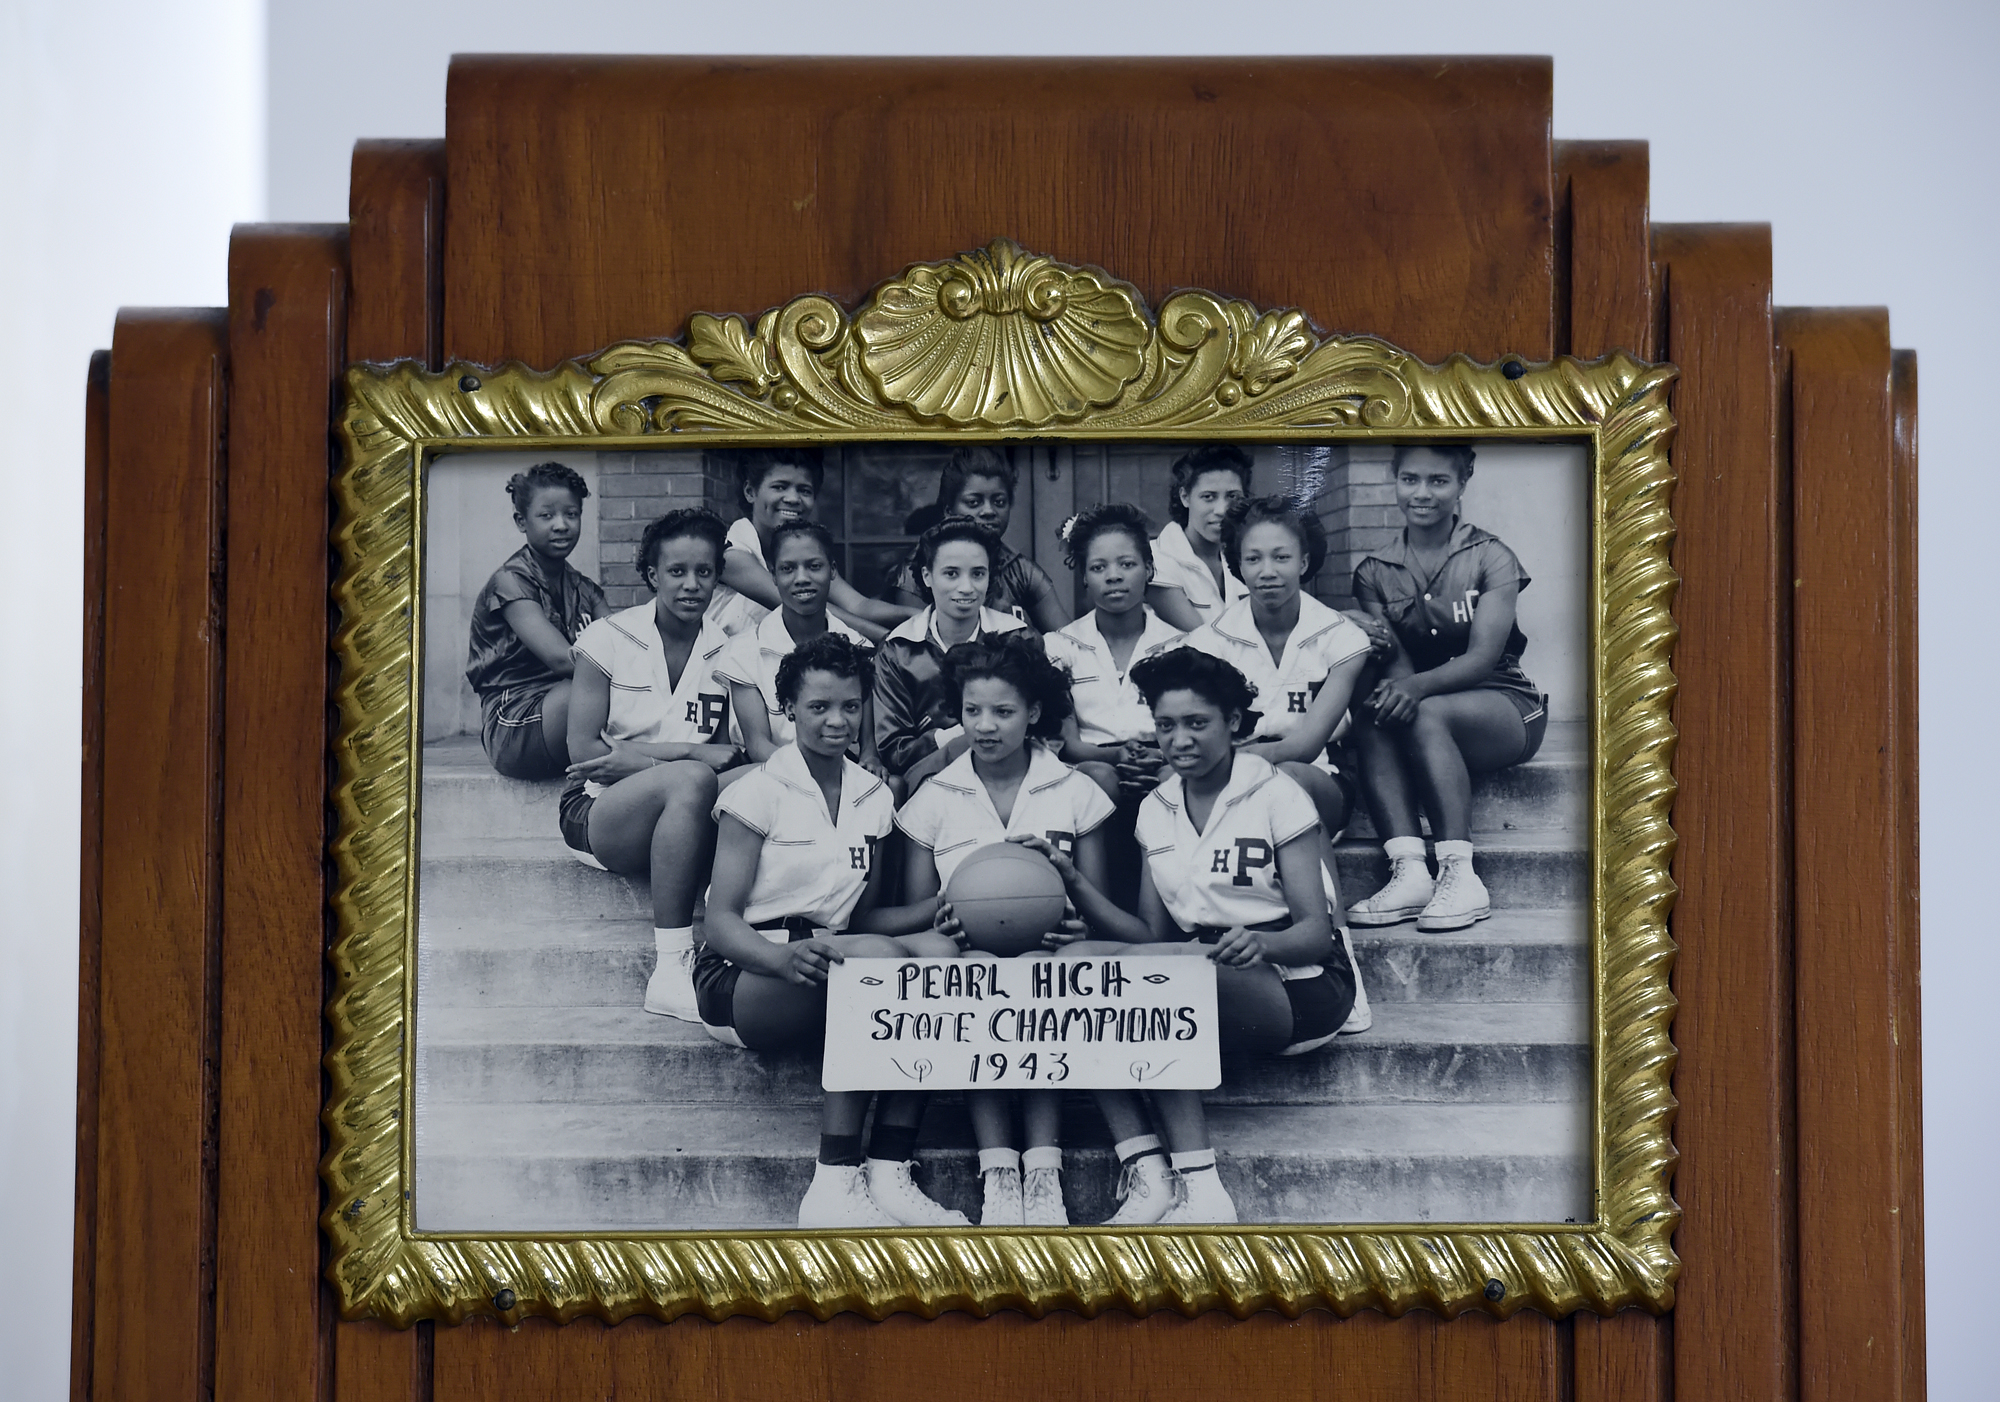 A photograph of Pearl High School's women's basketball team from 1943 on display in a room that was once one of the school's original locker rooms on Monday, July 11, 2016, in Nashville, Tenn.